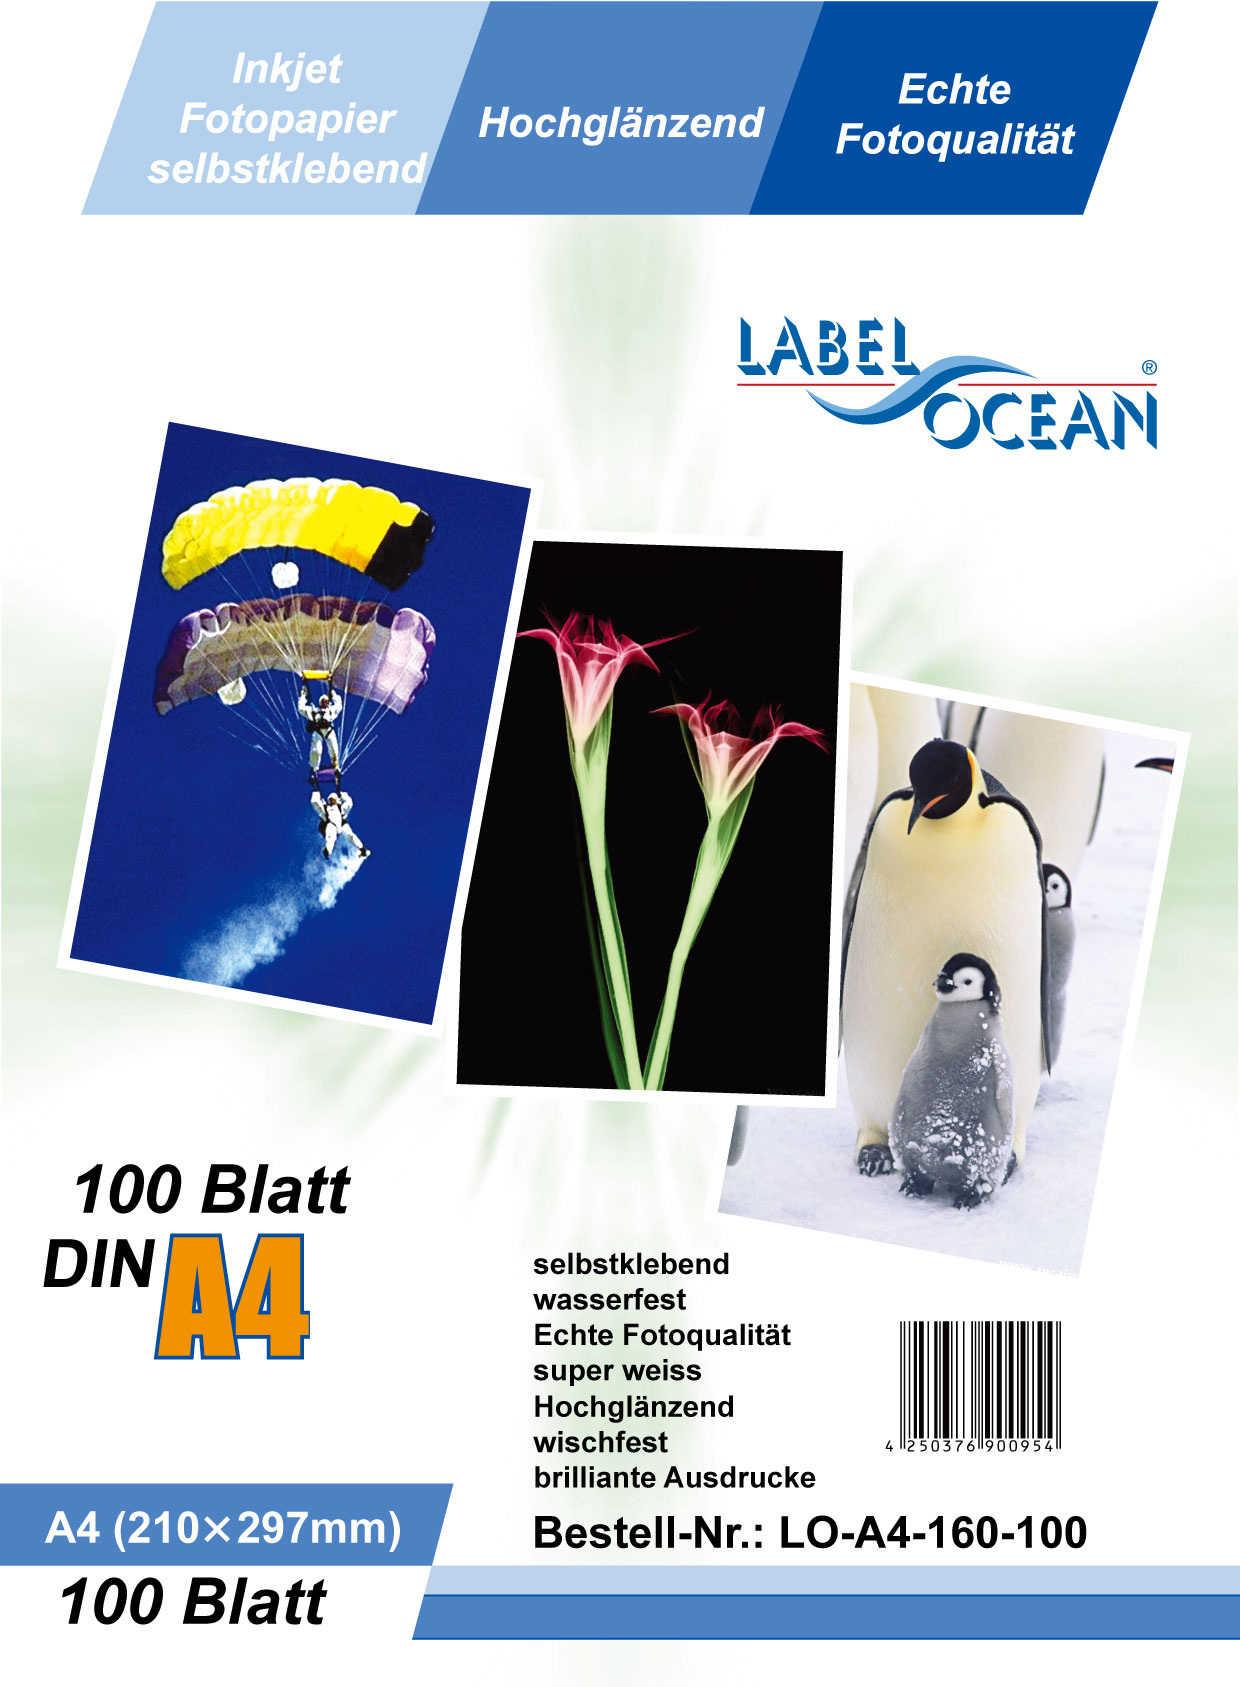 A4 (297x210mm), 125g/m² (incl. Dragermateriaal)